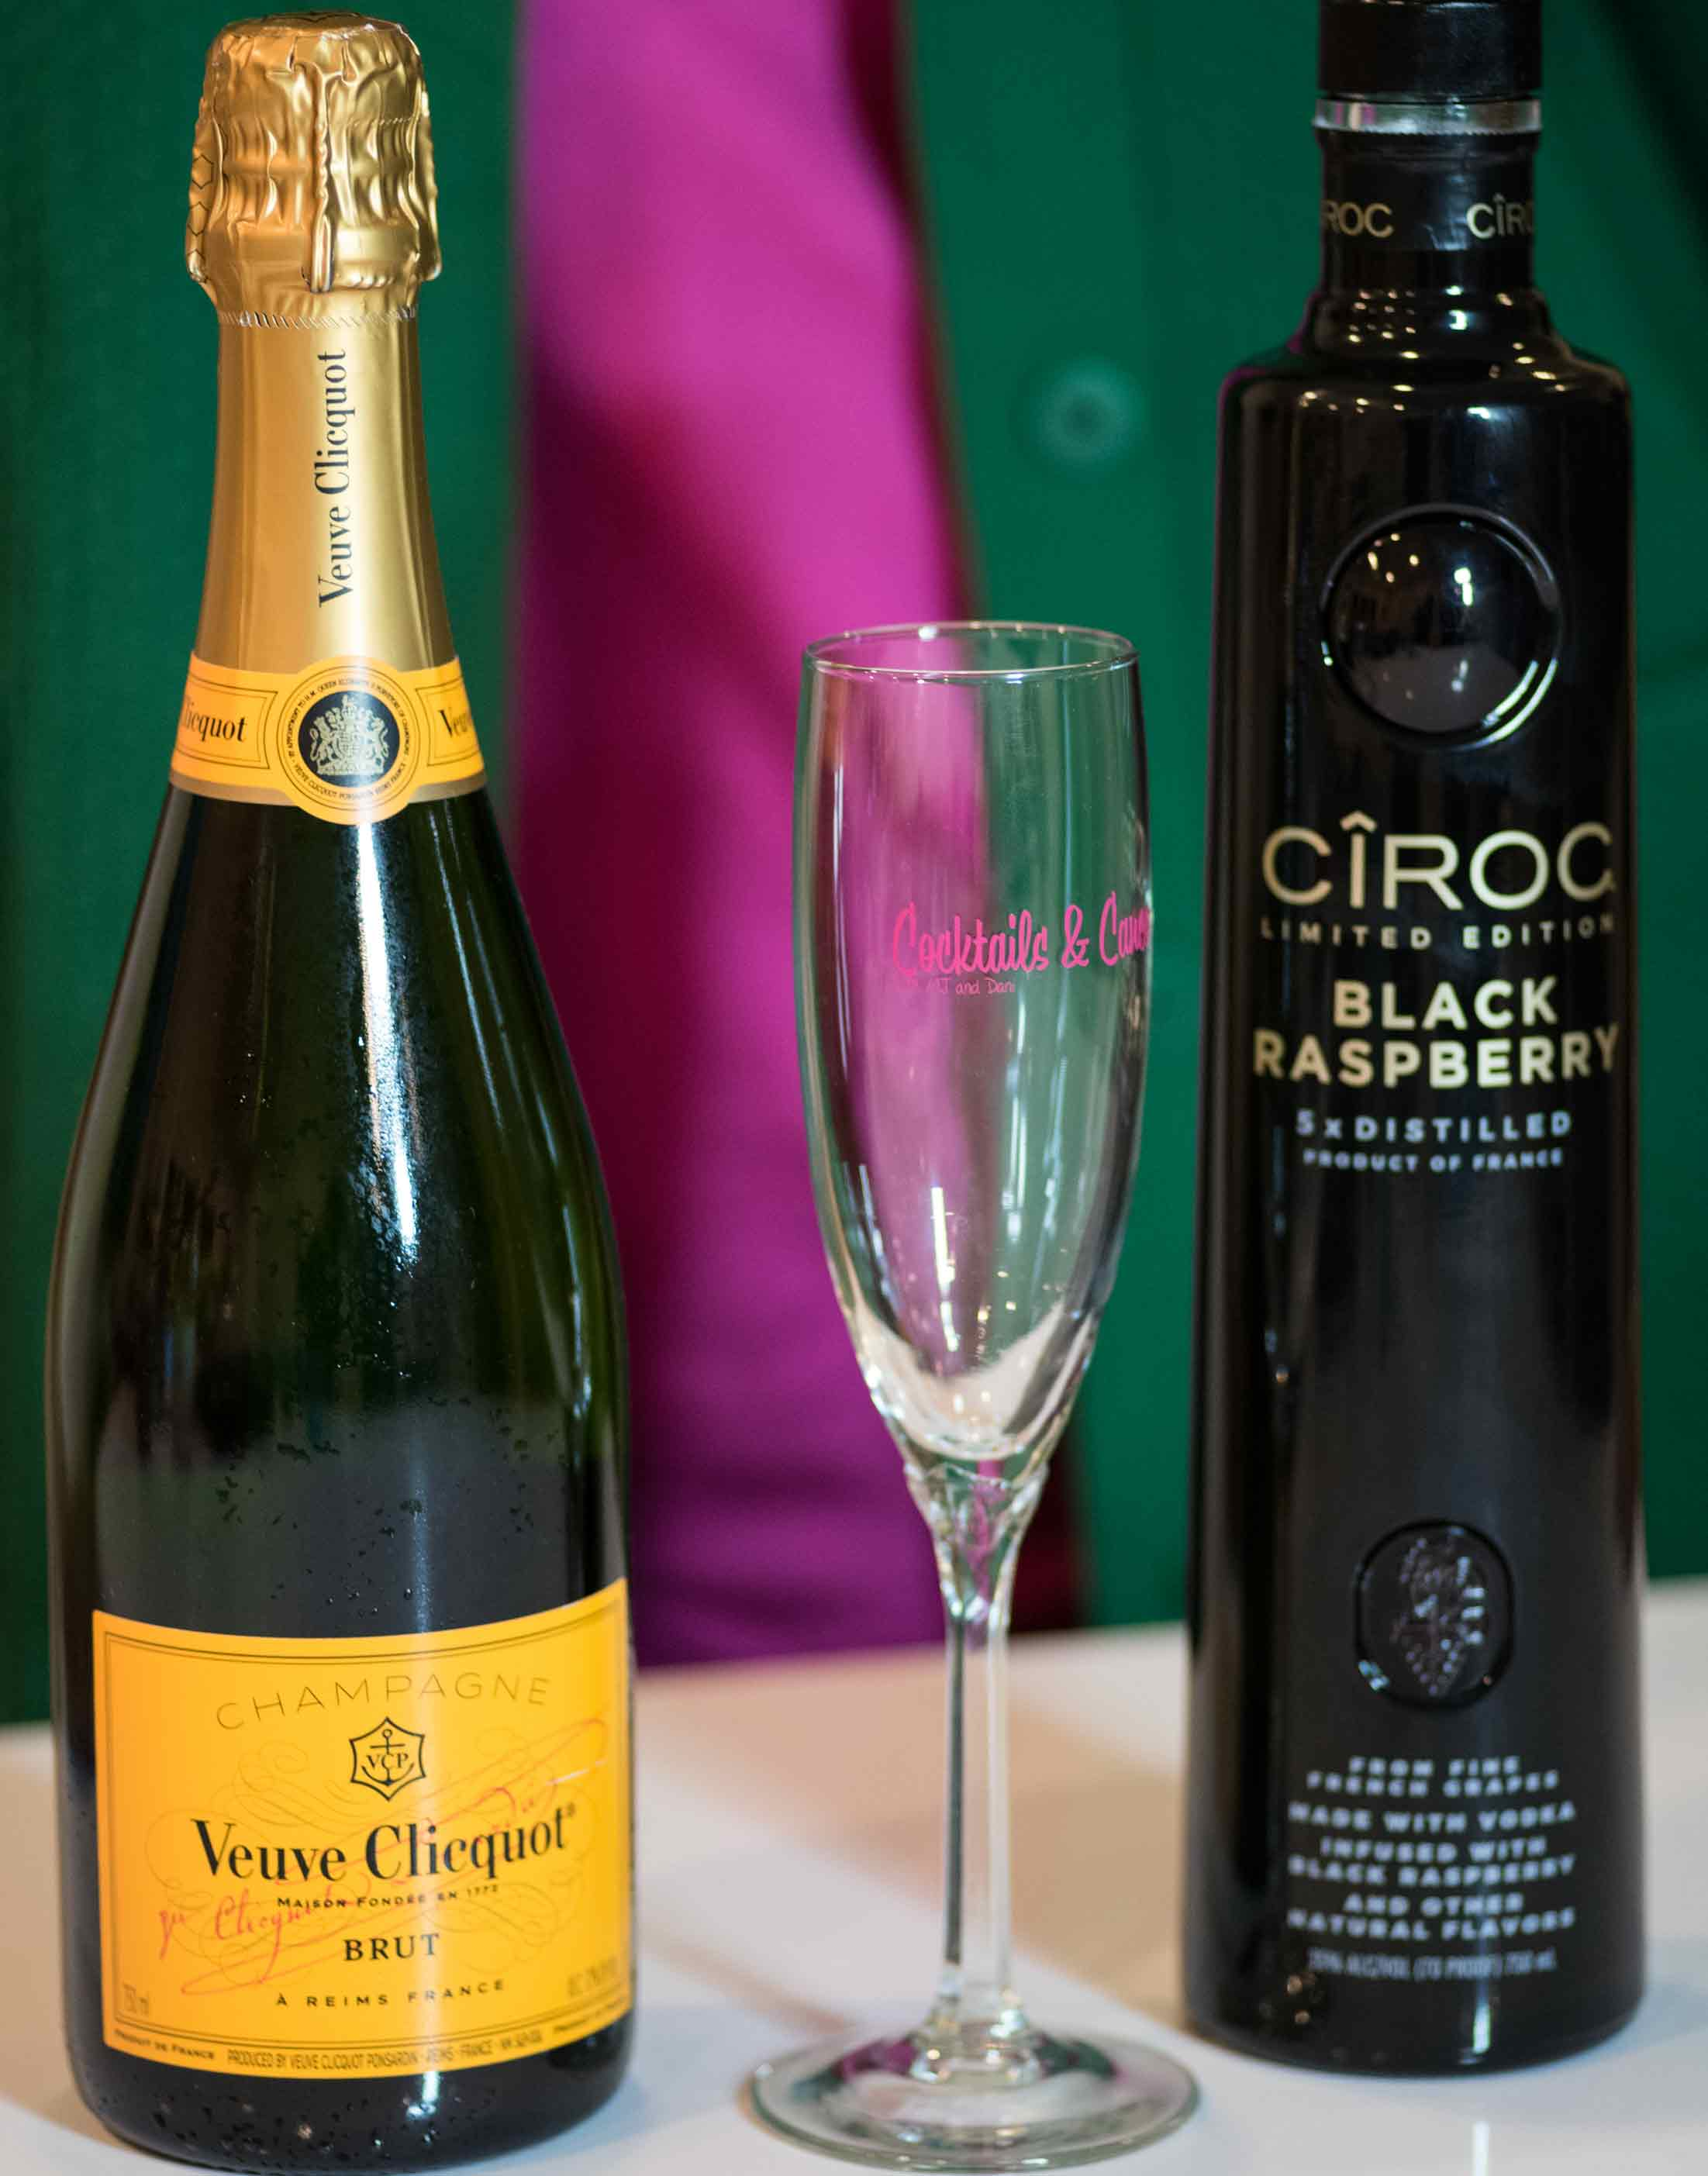 MJ's drink: Champagne and Ciroc Blackberry